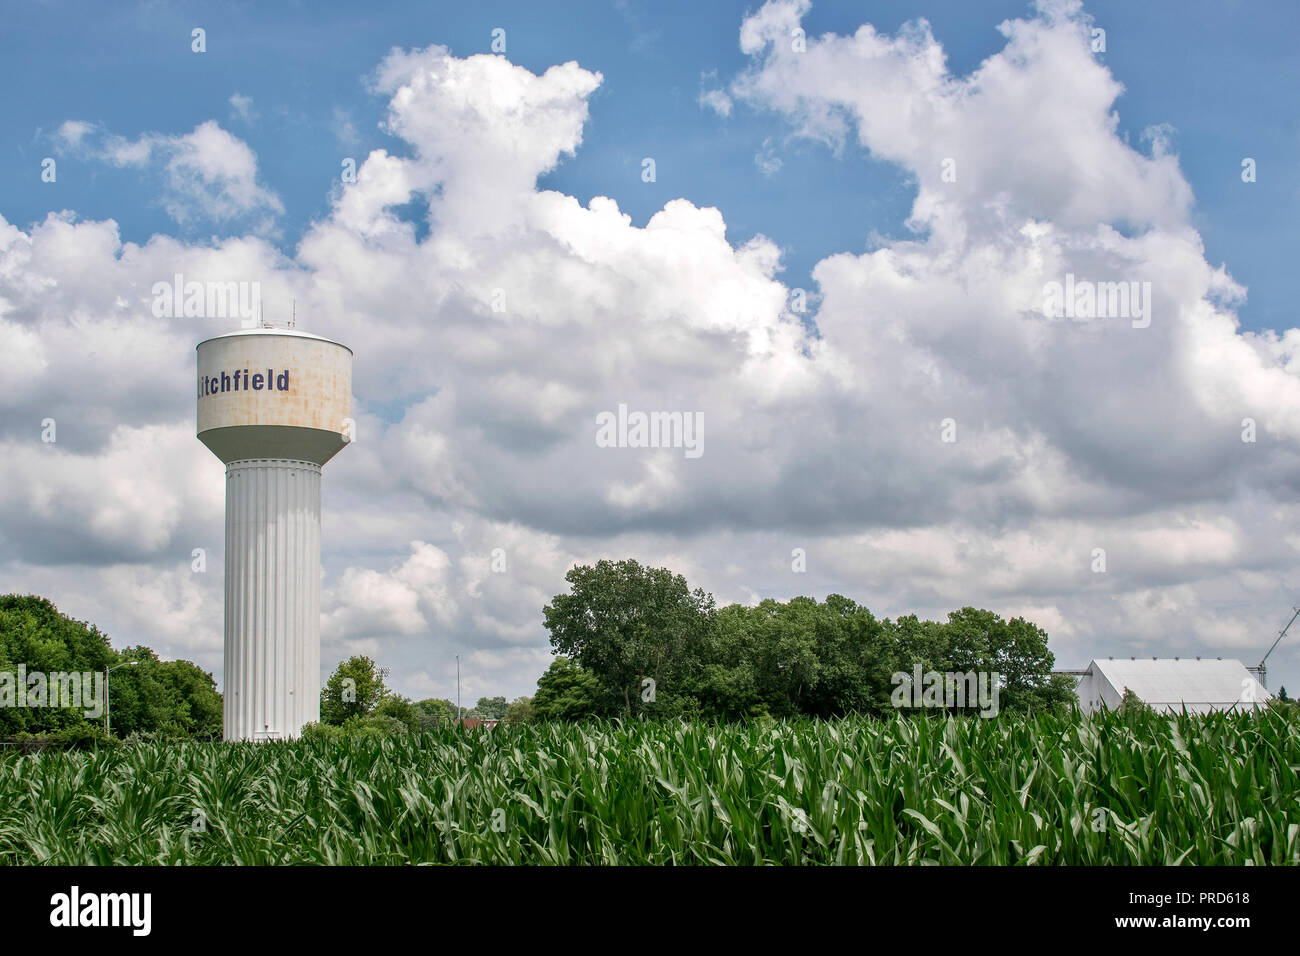 Water tower in a cornfield on historic Route 66, Litchfield, Illinois, USA - Stock Image